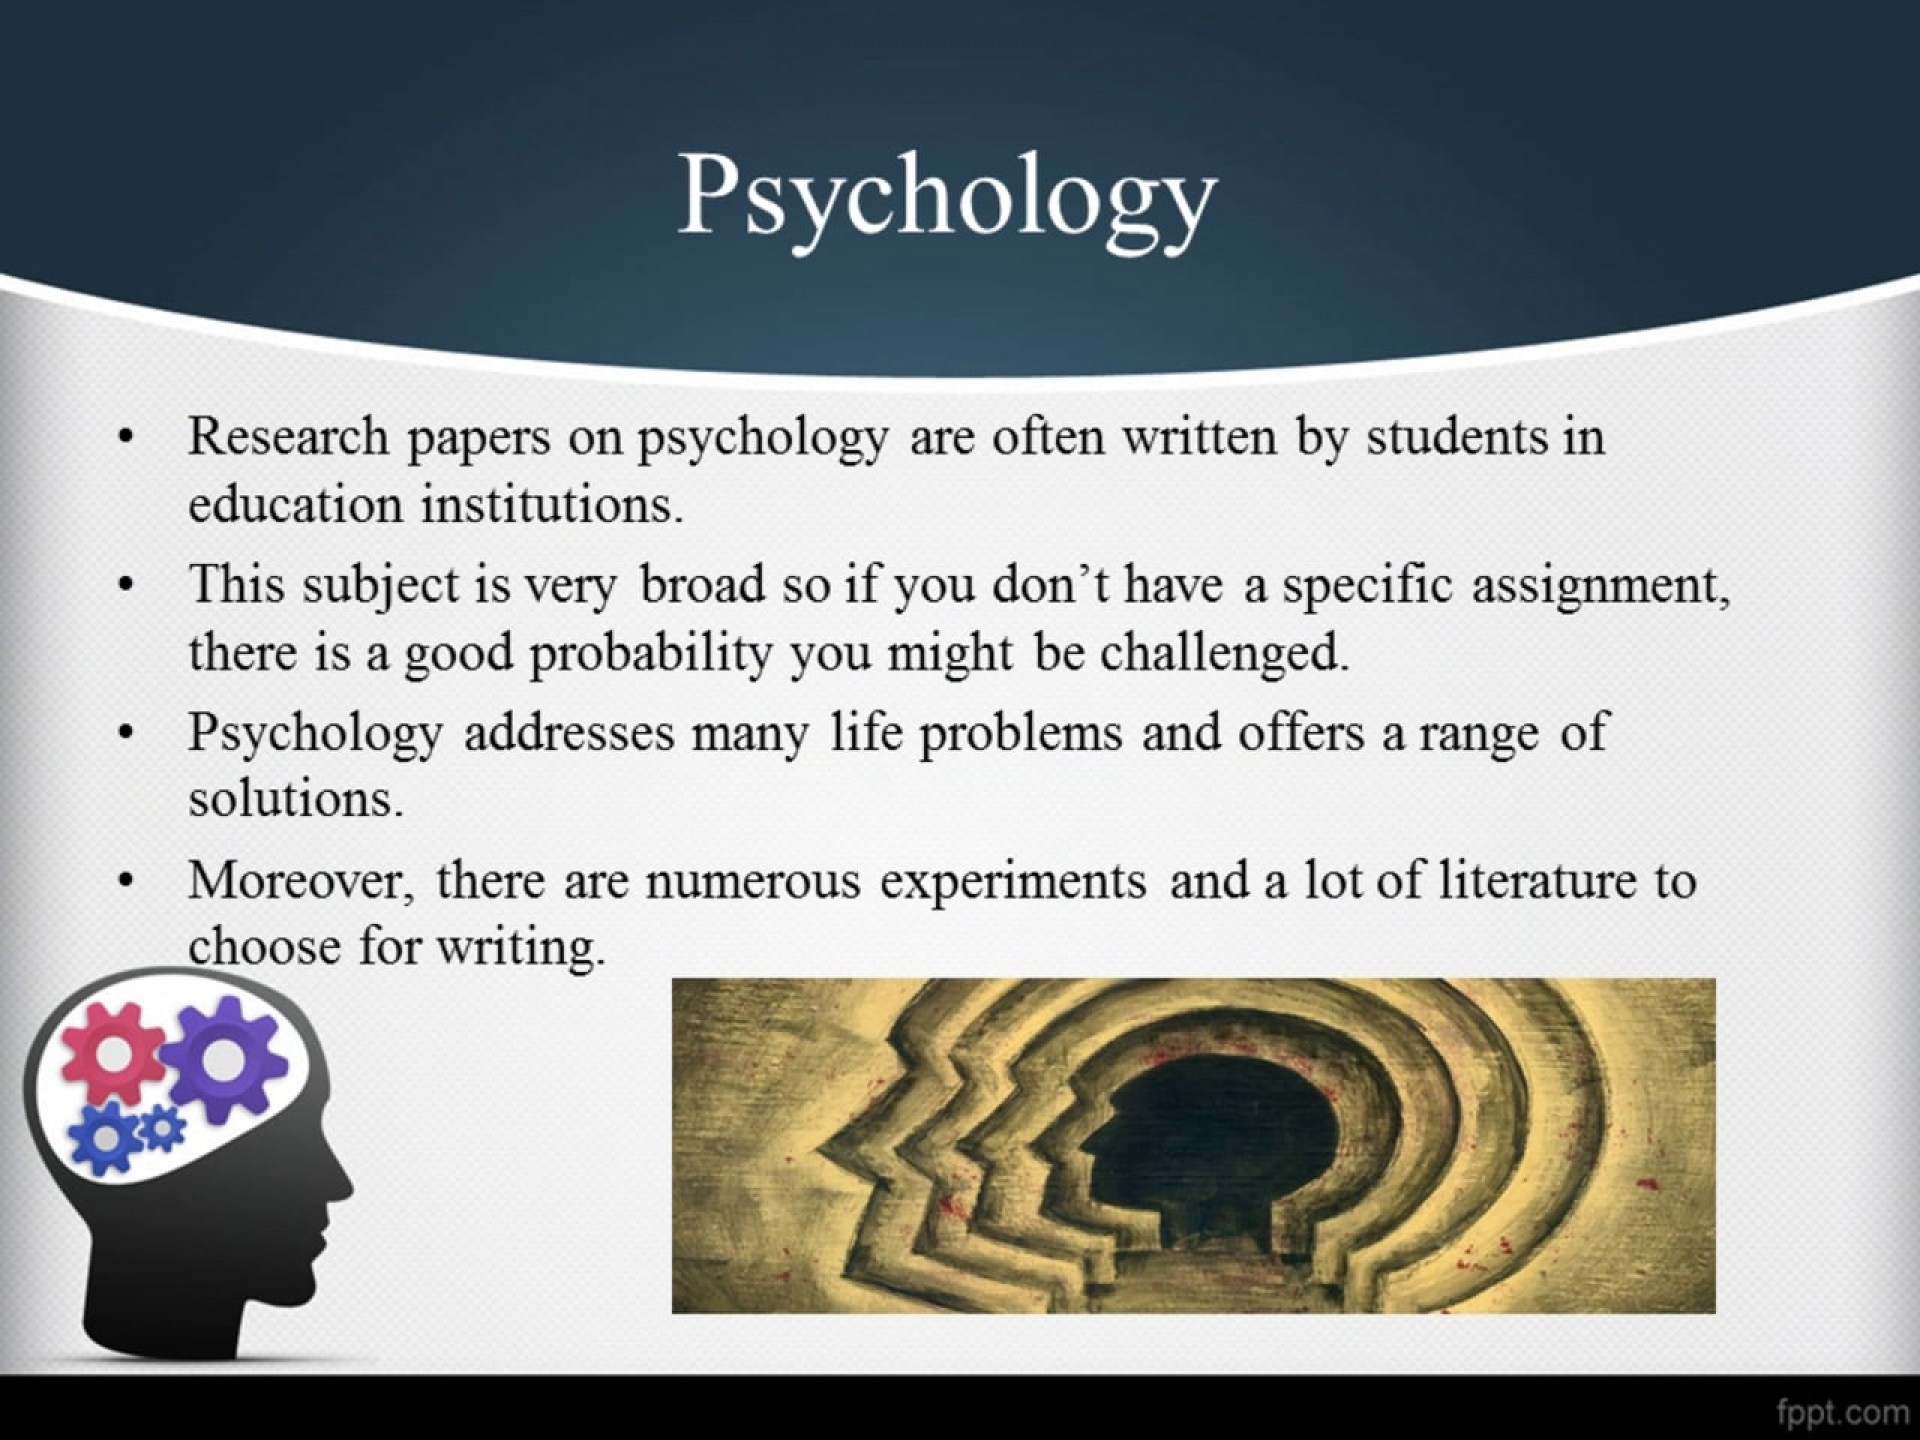 007 Research Paper 534384154 1280x960 Psychology Topics For High School Frightening Students 1920